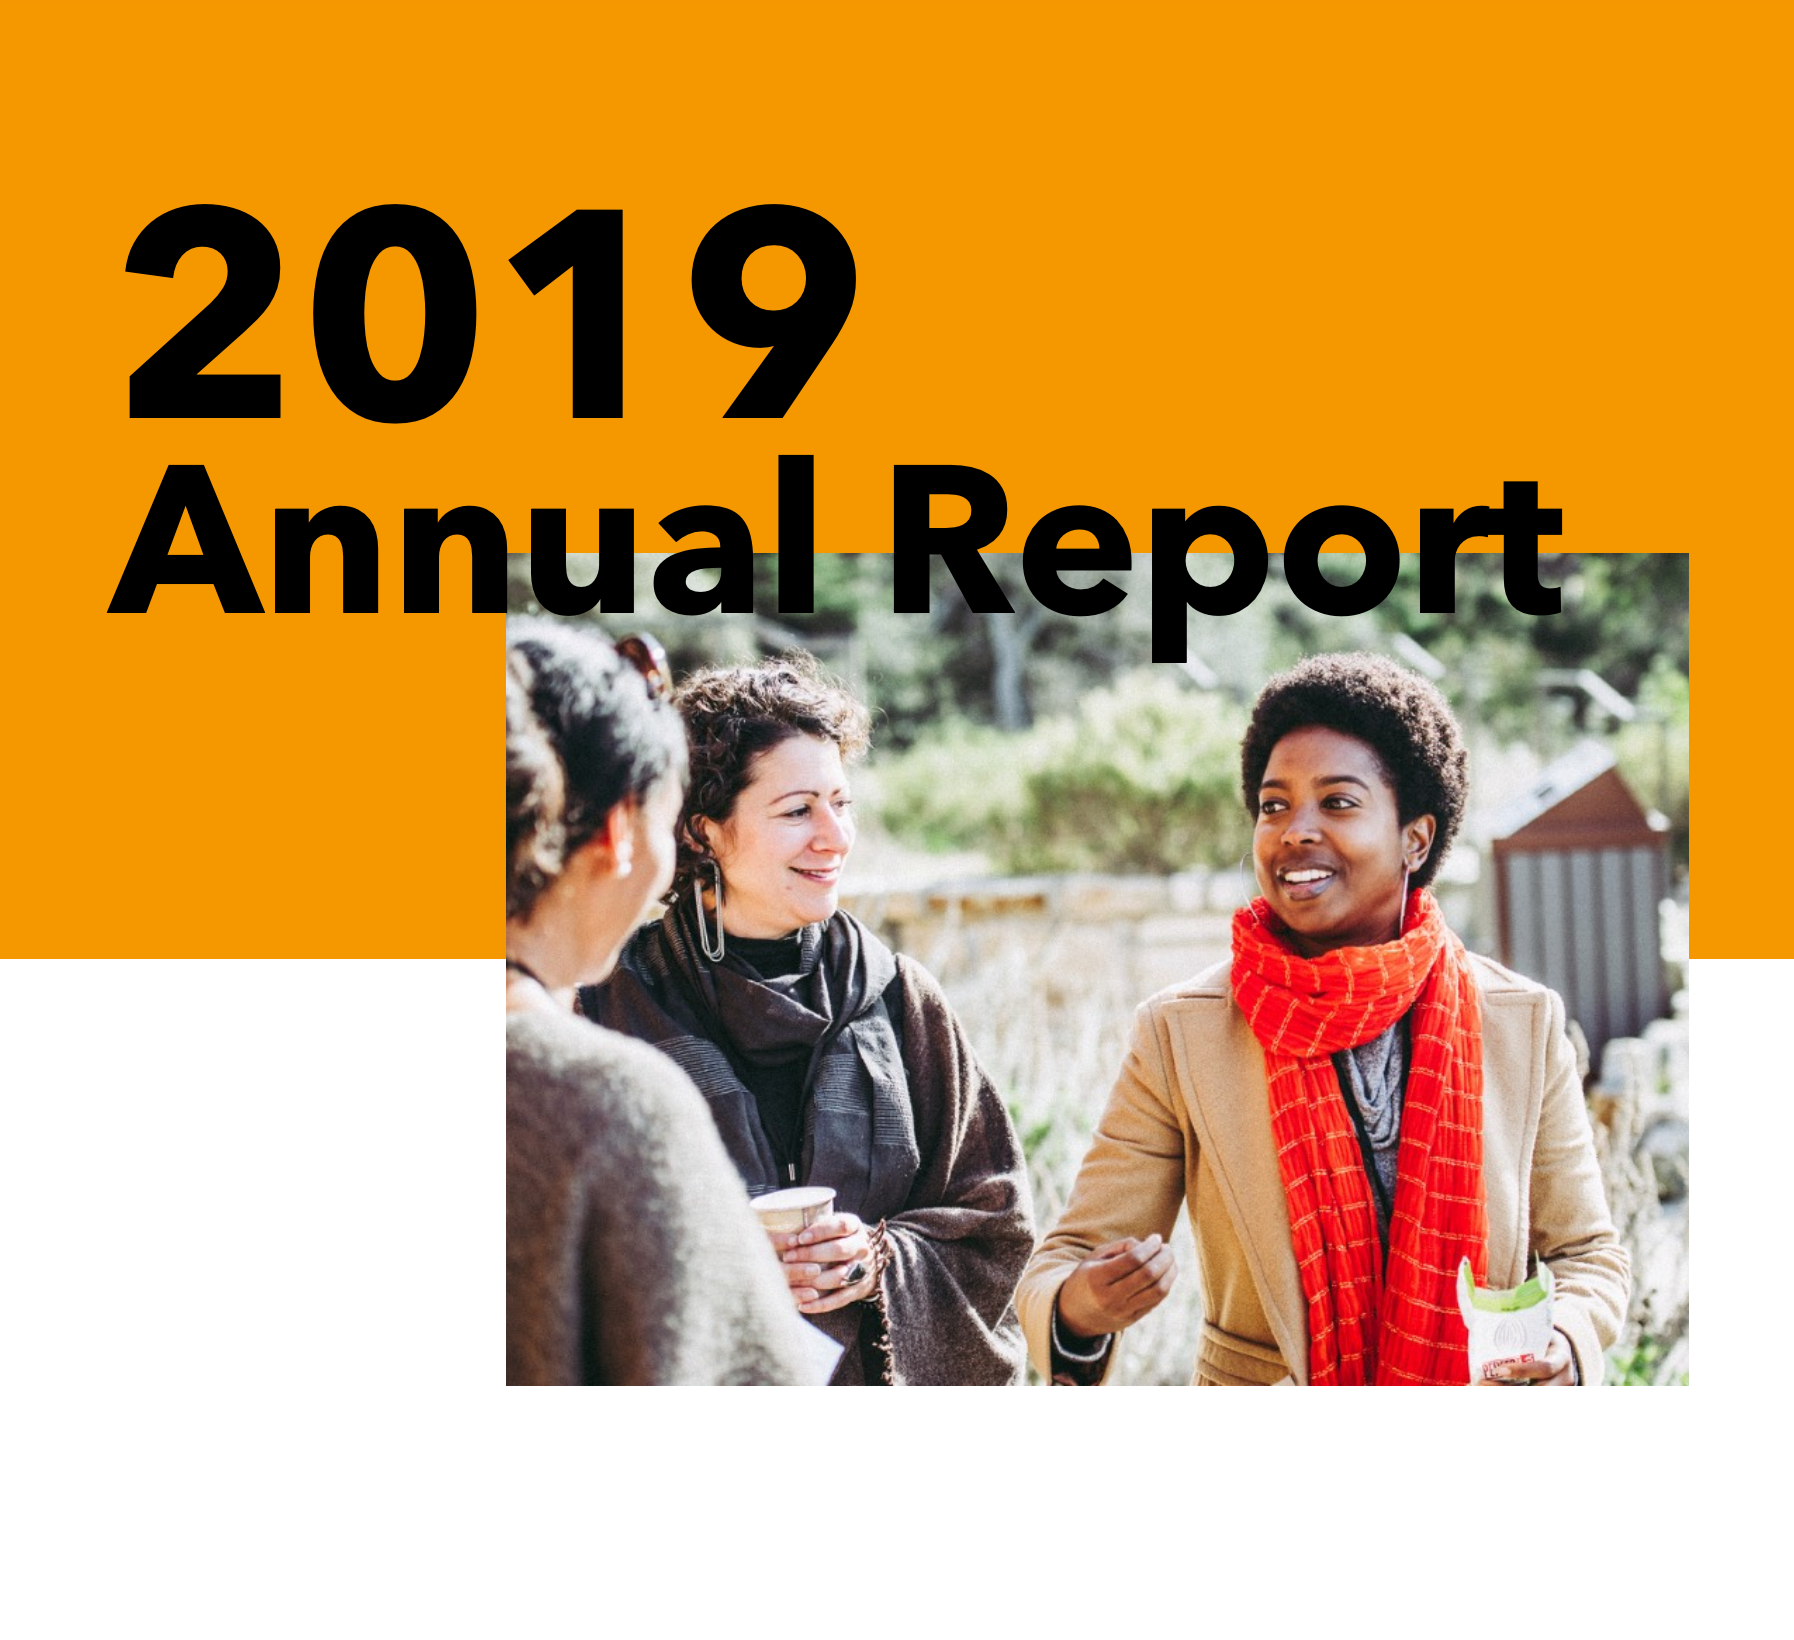 2019 Common Future Annual Report